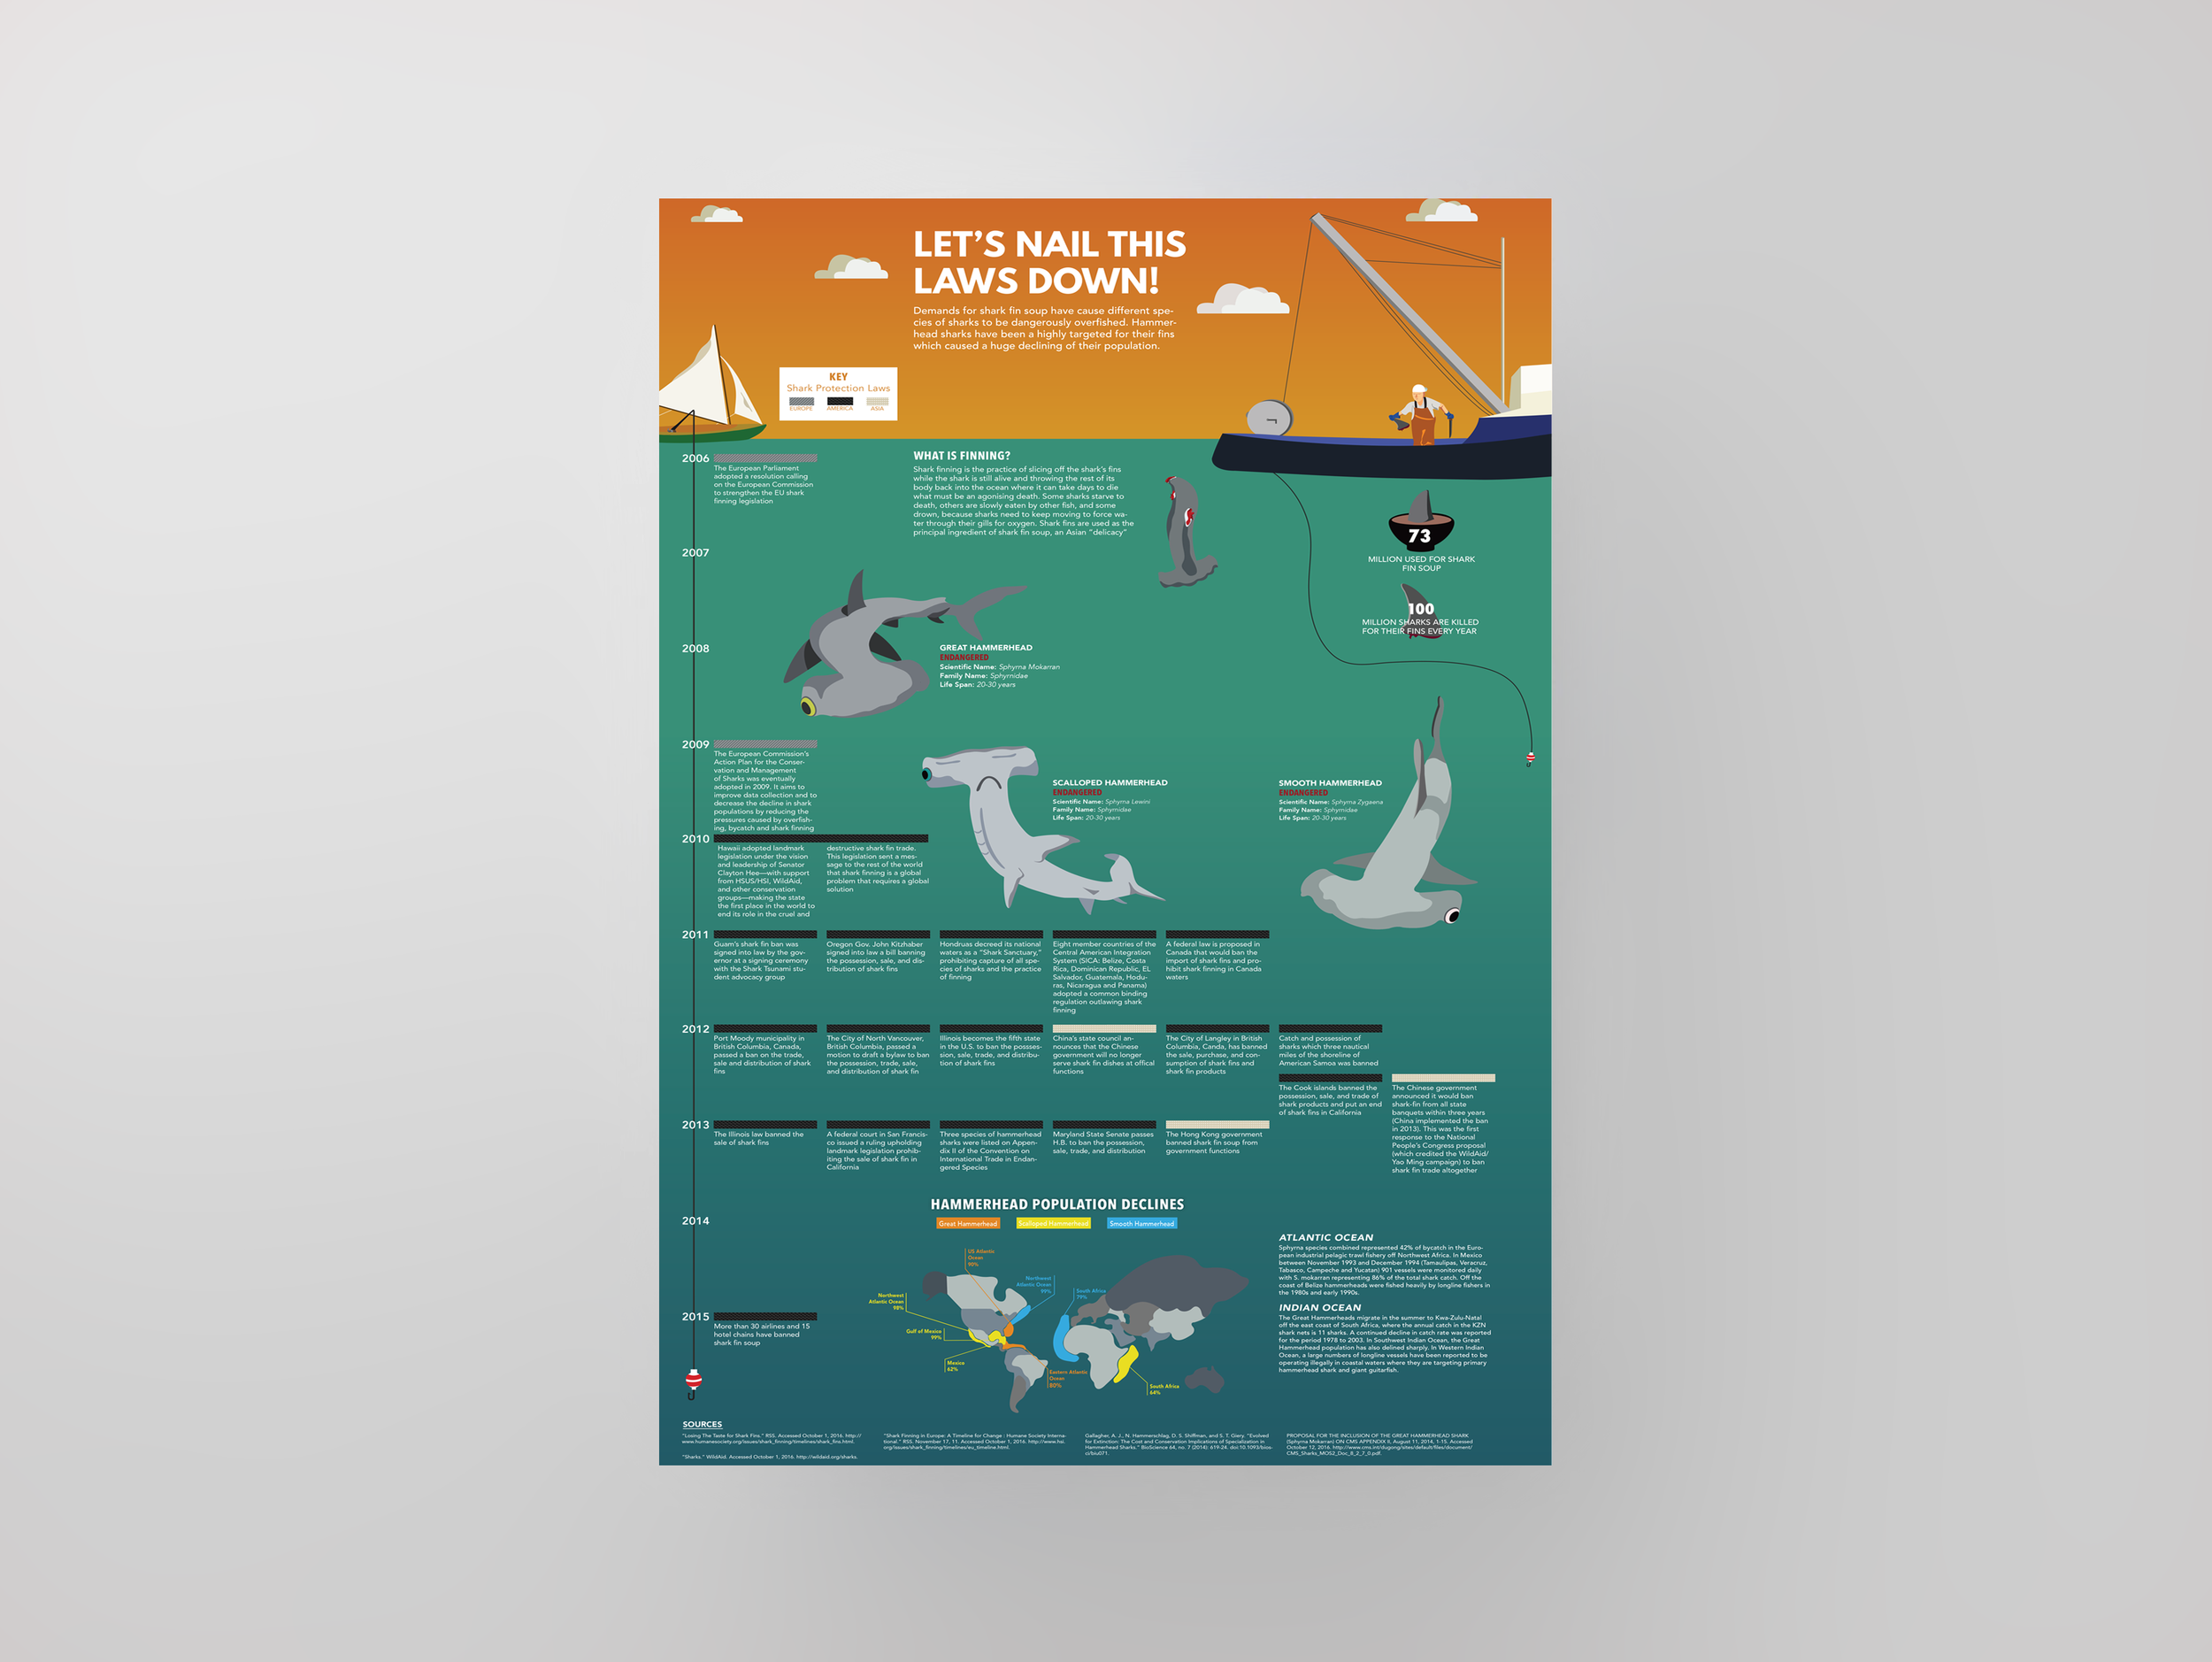 The shark population has declined tremendously. I created an educational poster to illustrate the impact. The poster displays a timeline of laws that have been passed to protect sharks.